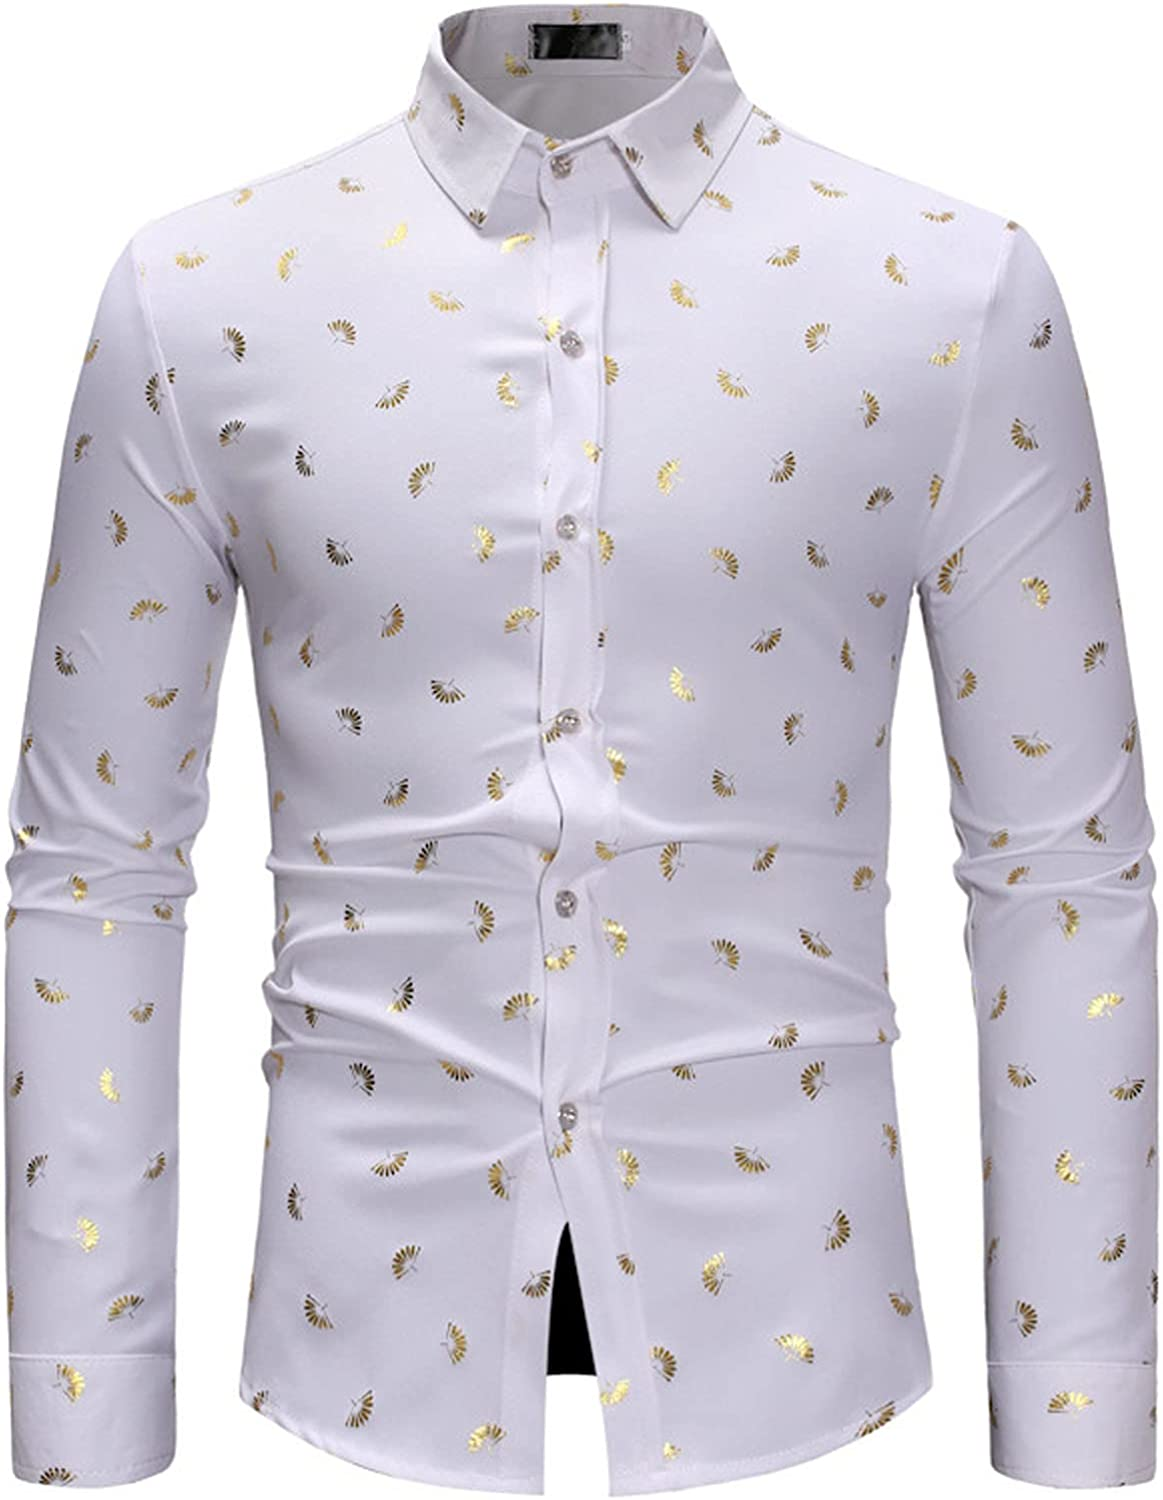 Men's Slim Fit Printed Pattern Shirts Long Sleeve Casual Button Down Dress Shirt Office Clothes